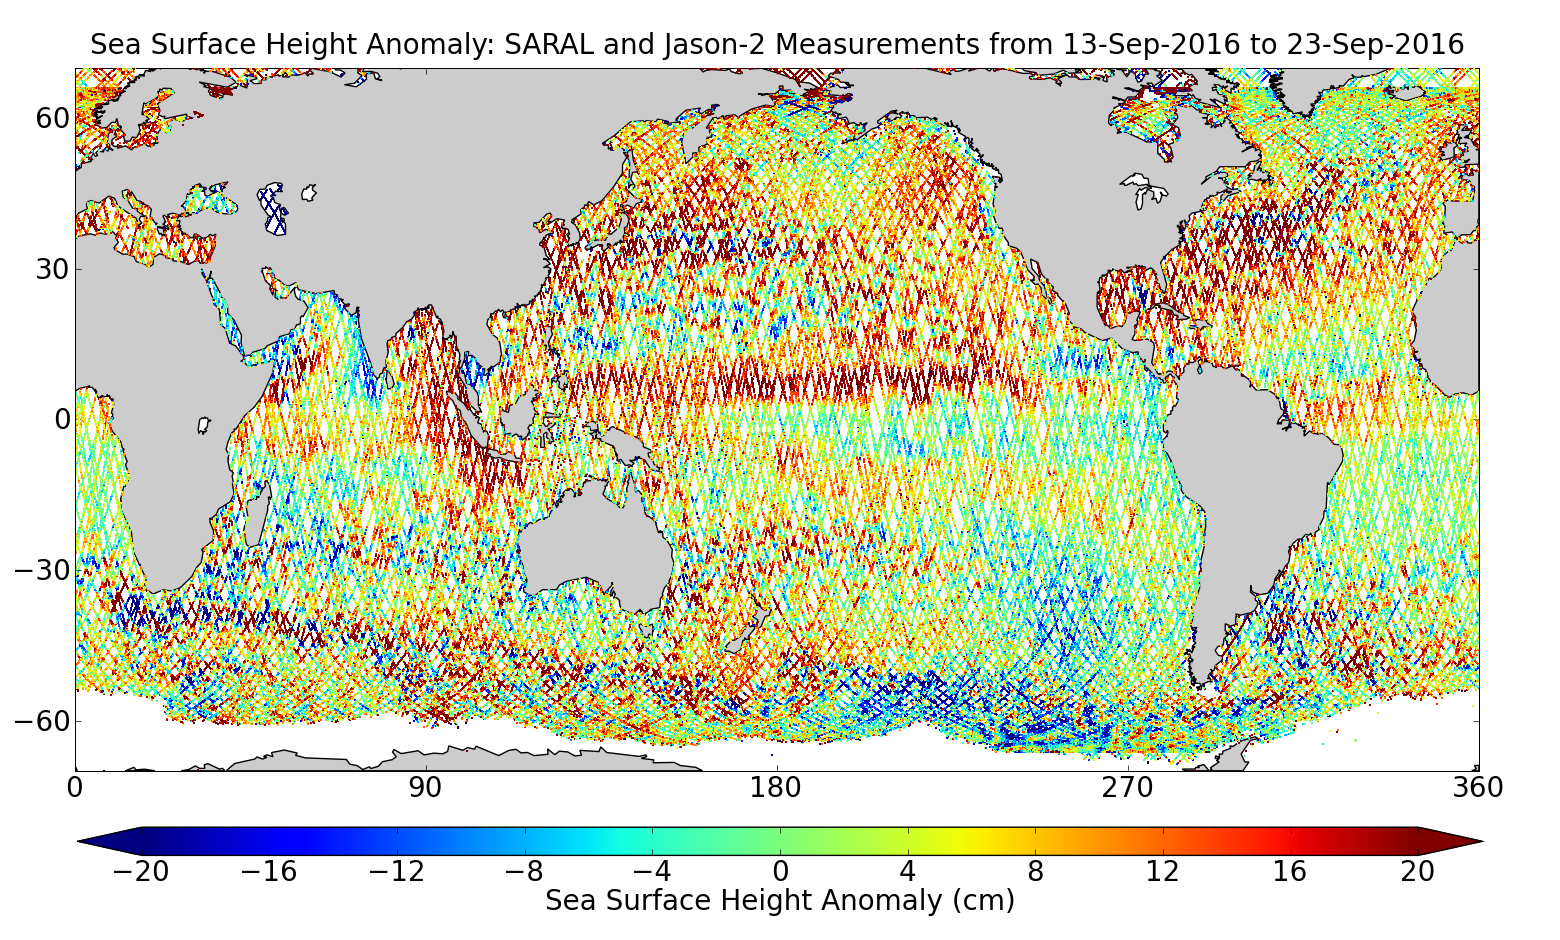 Sea Surface Height Anomaly: SARAL and Jason-2 Measurements from 13-Sep-2016 to 23-Sep-2016